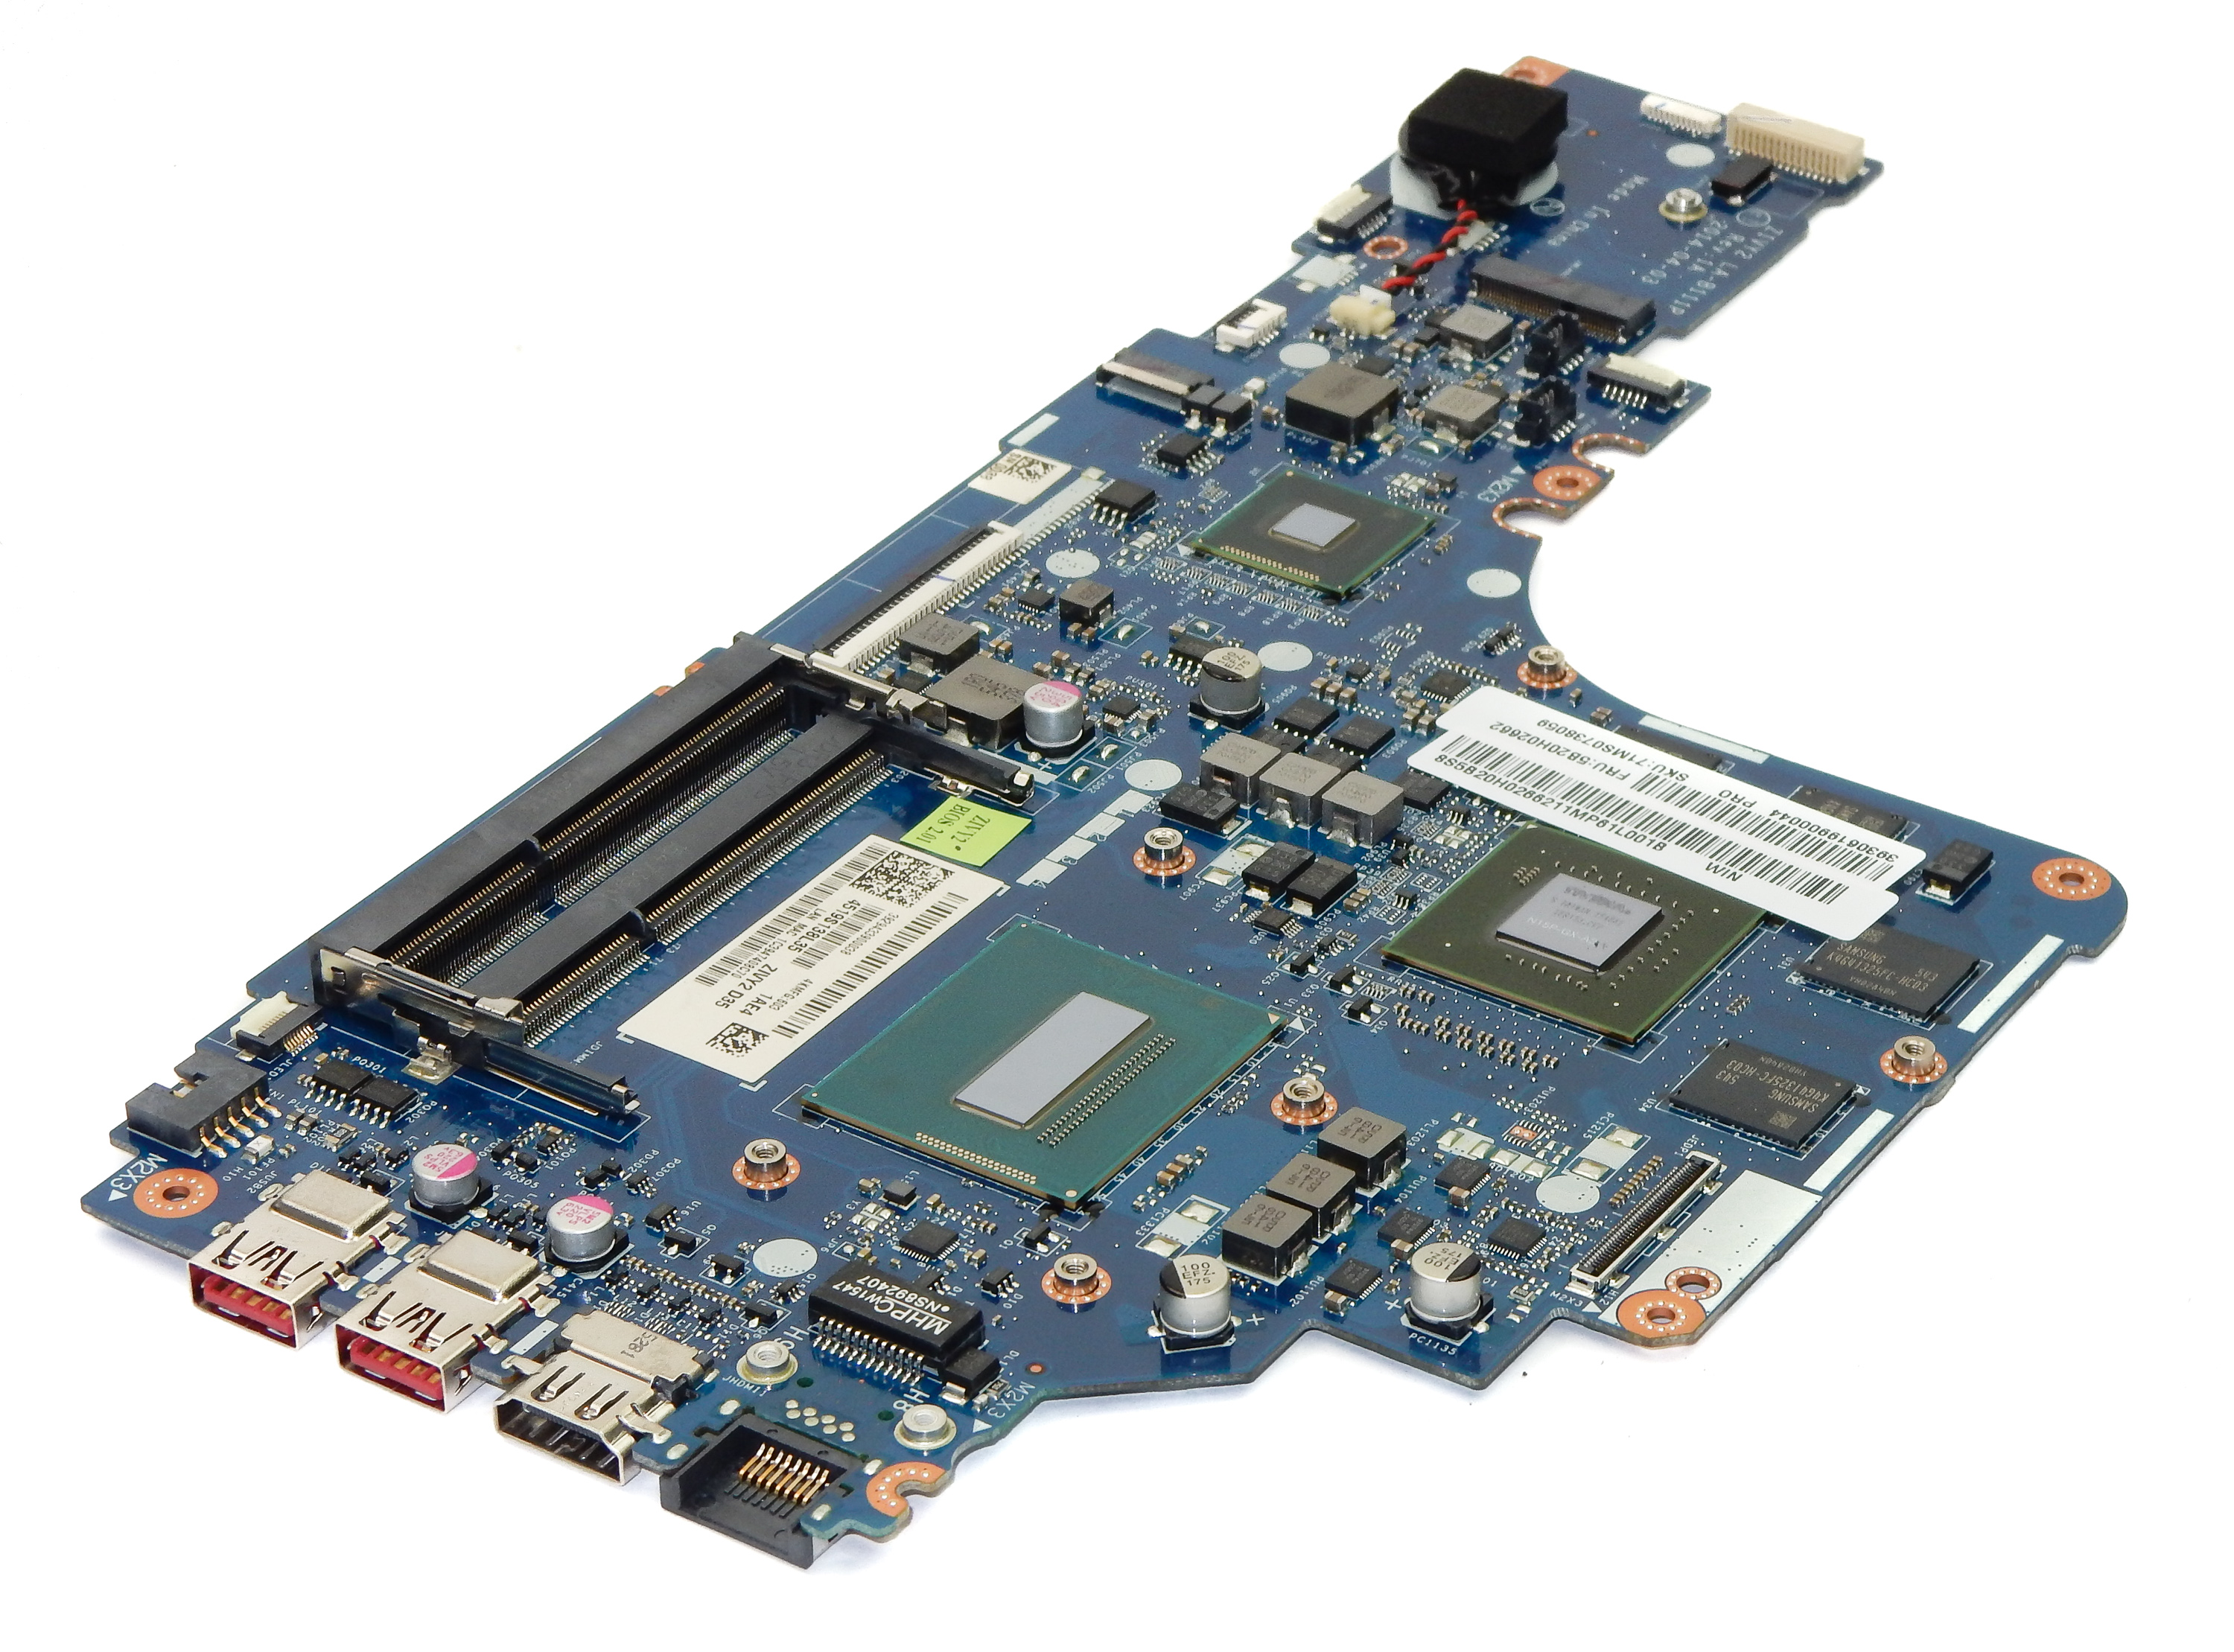 5B20H02662 Lenovo Y50-70 Motherboard with BGA Intel Core i7-4710HQ CPU